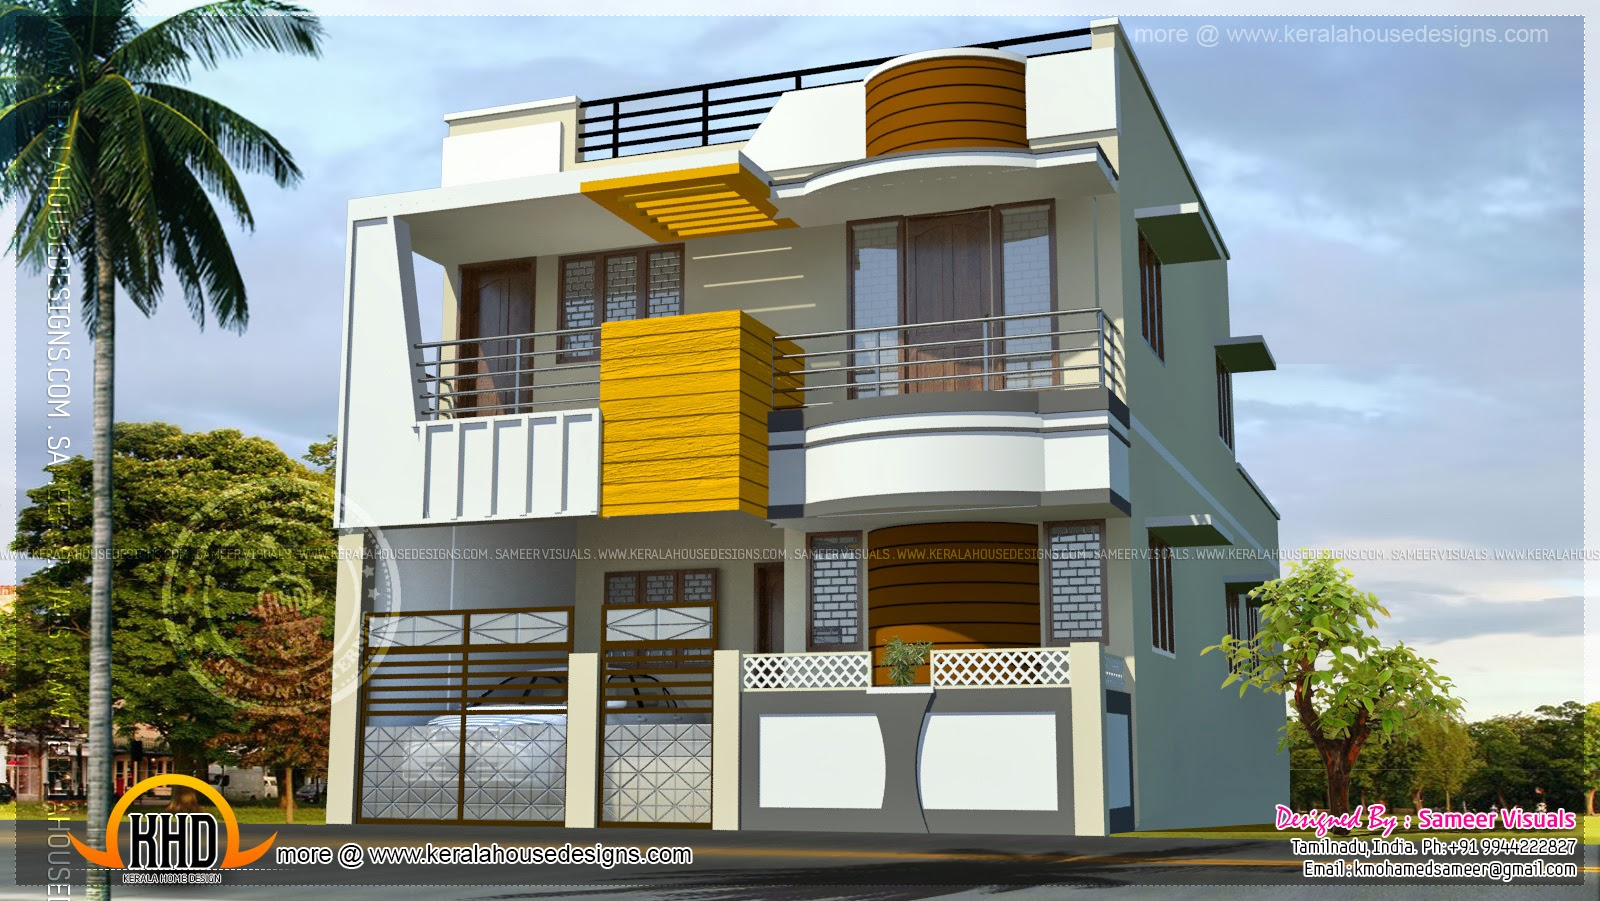 Double storied modern south indian home kerala home for Indian style home plans